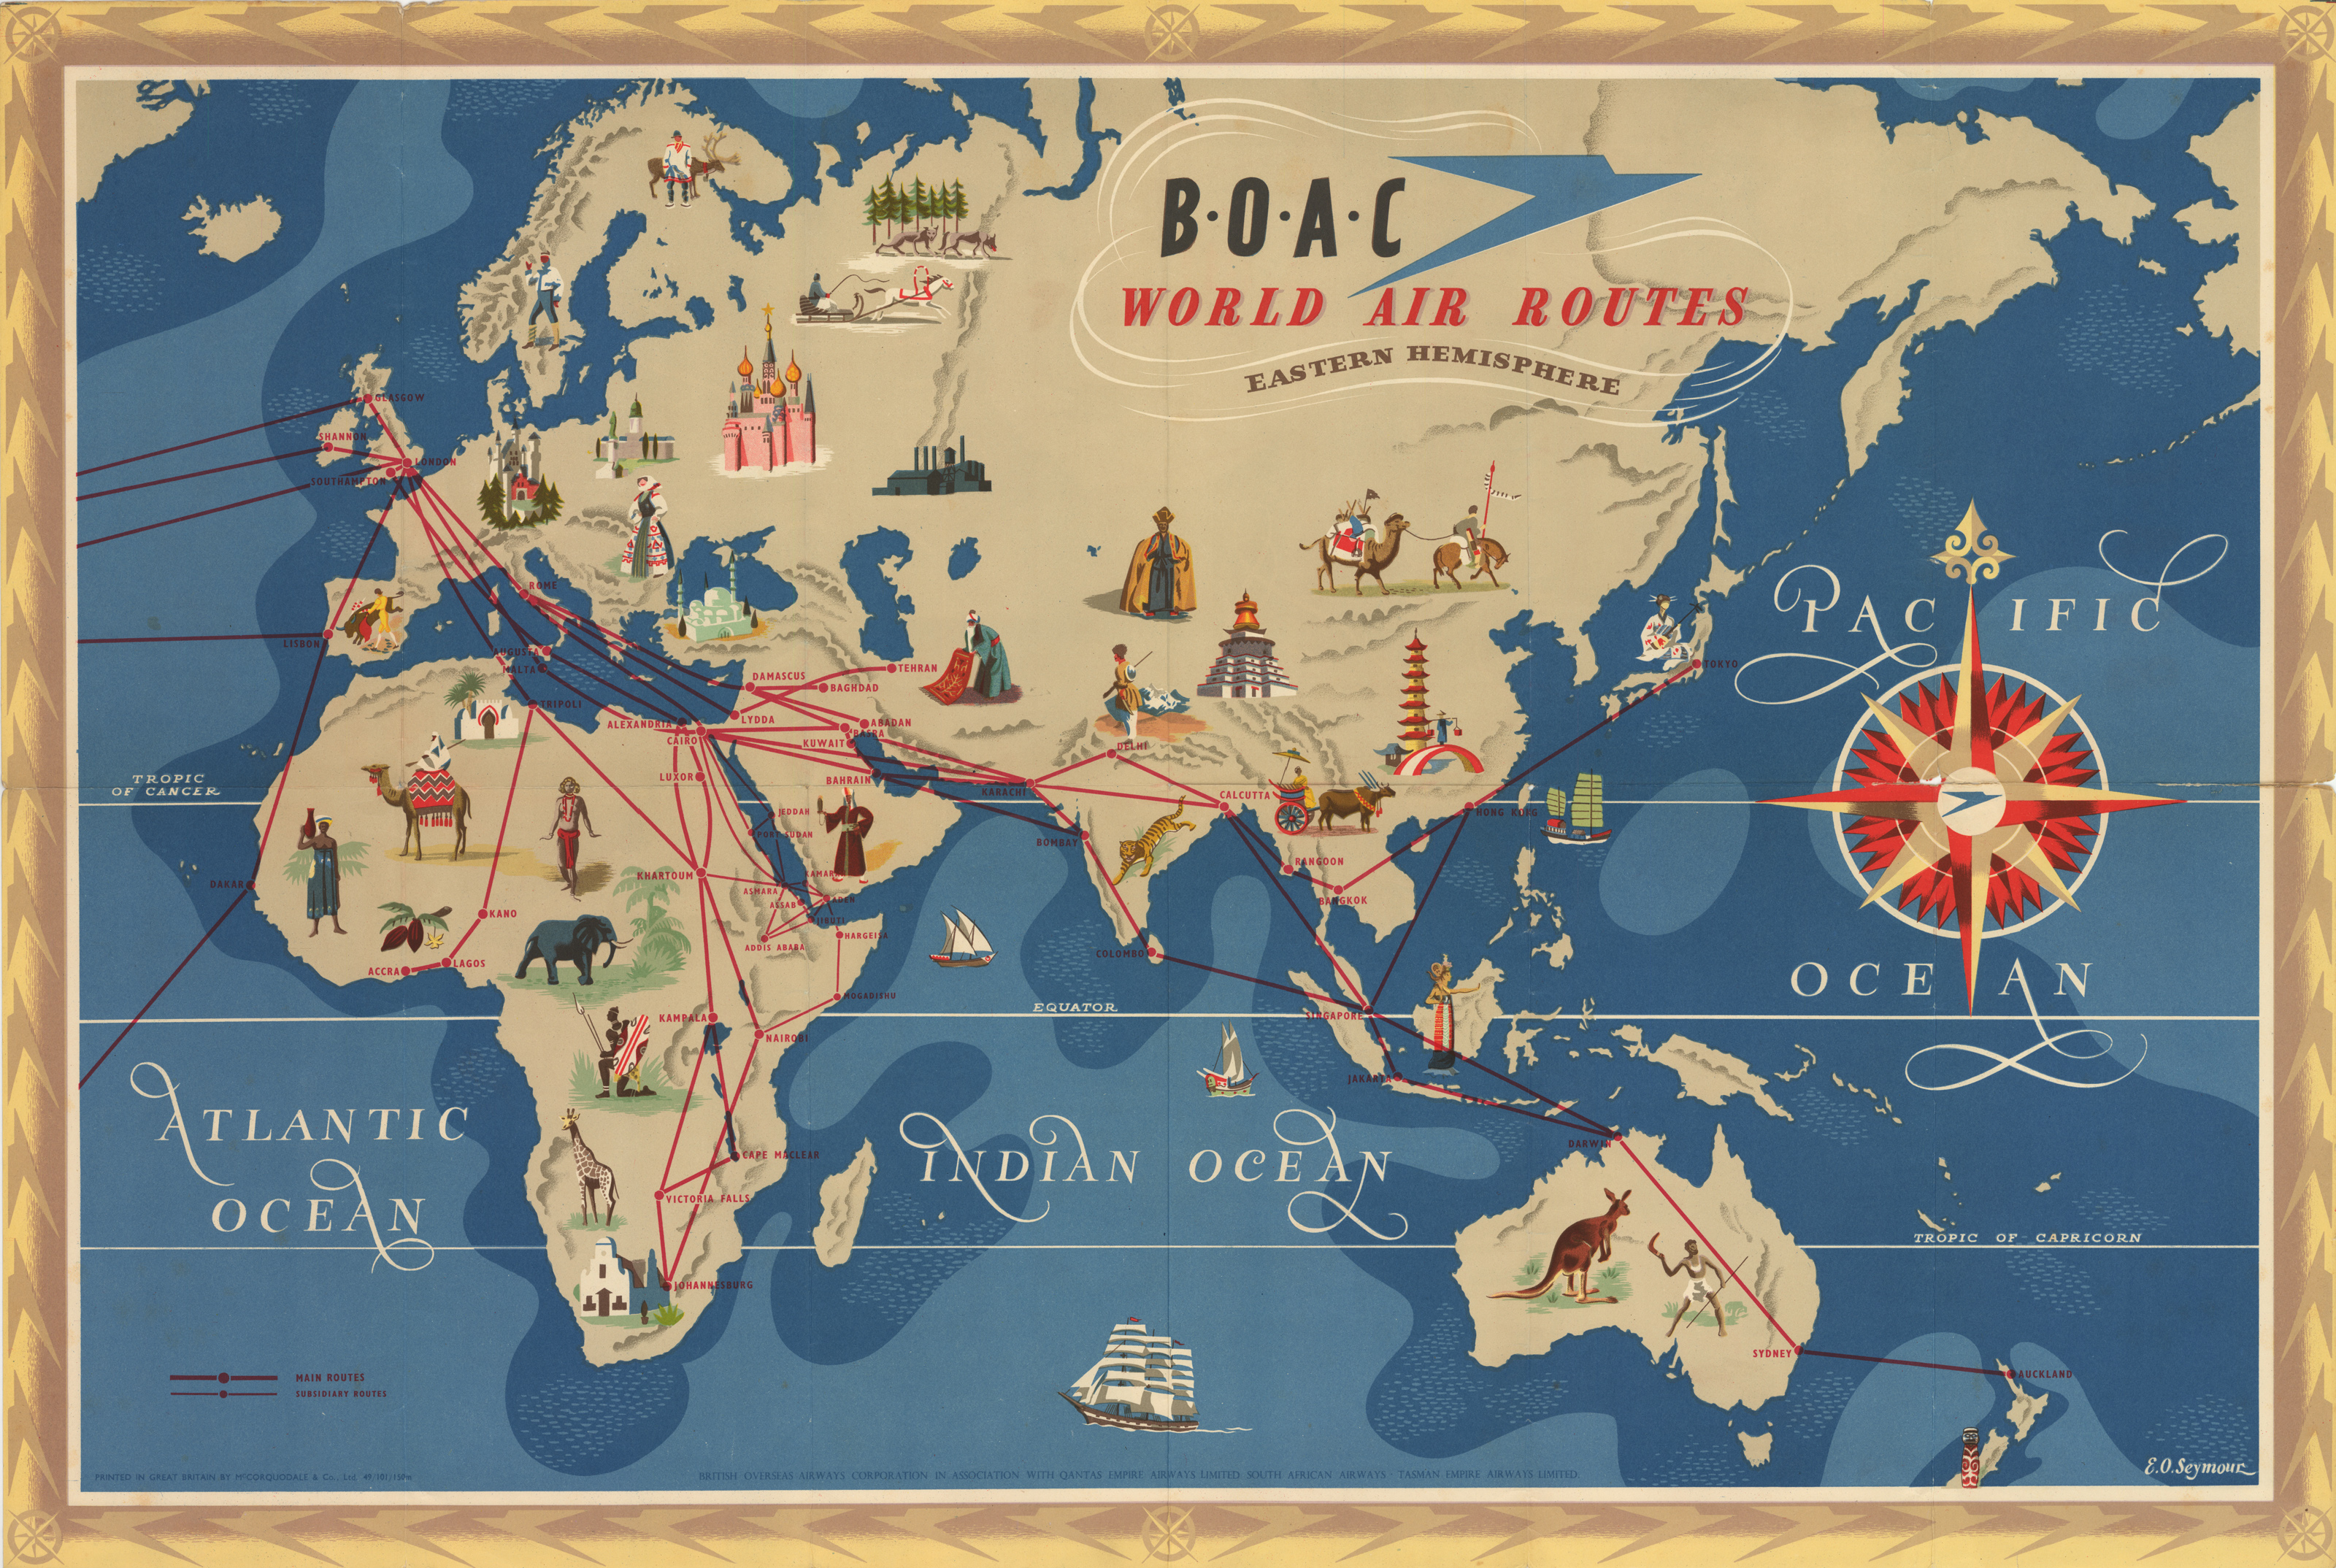 Air Map Of The World.Antique Map Boac World Air Routes By E O Seymour 1949 Hjbmaps Com